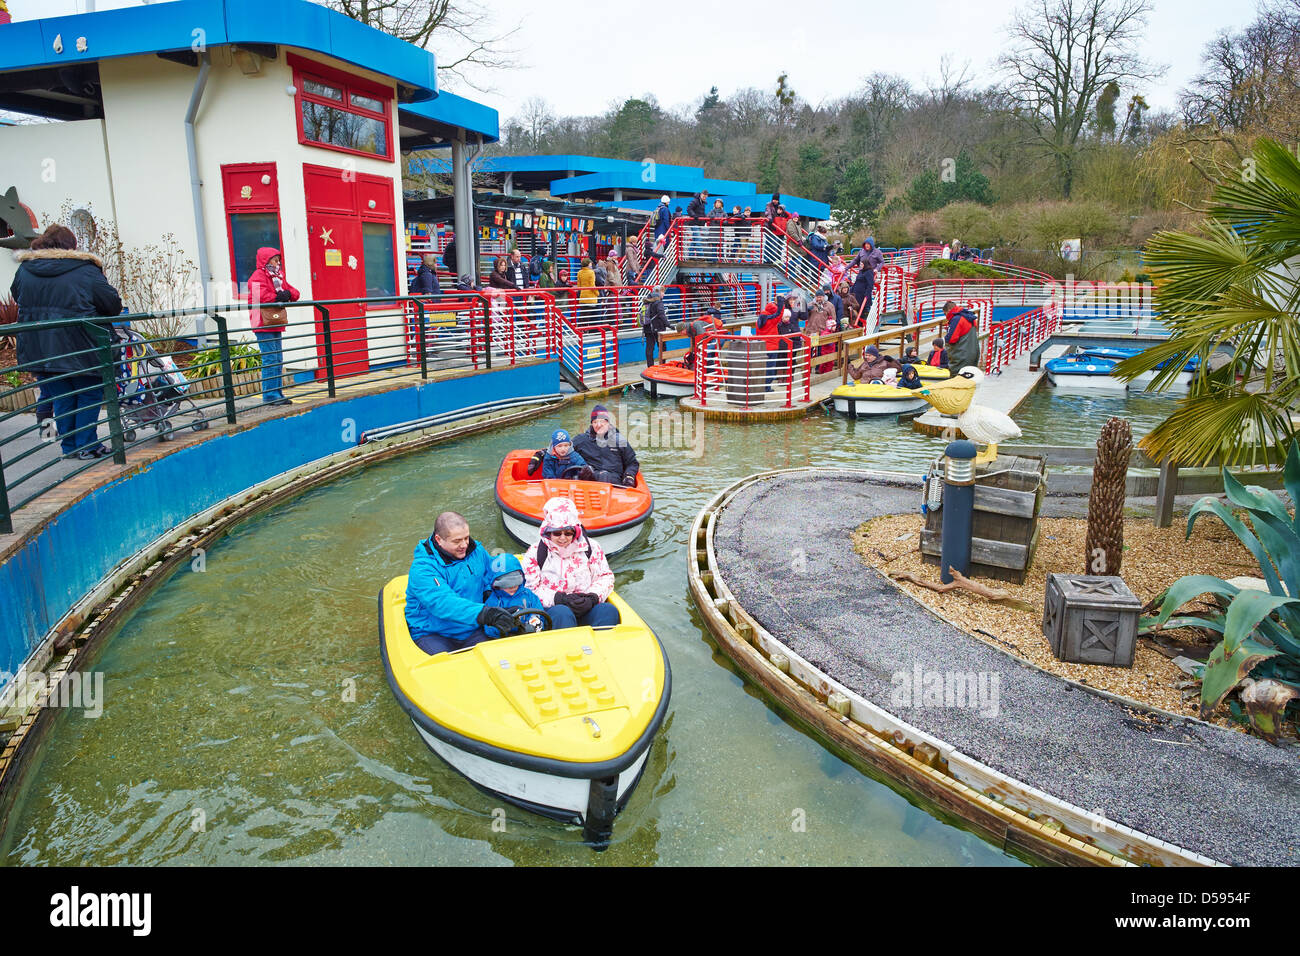 Boating School Legoland Windsor UK Stock Photo